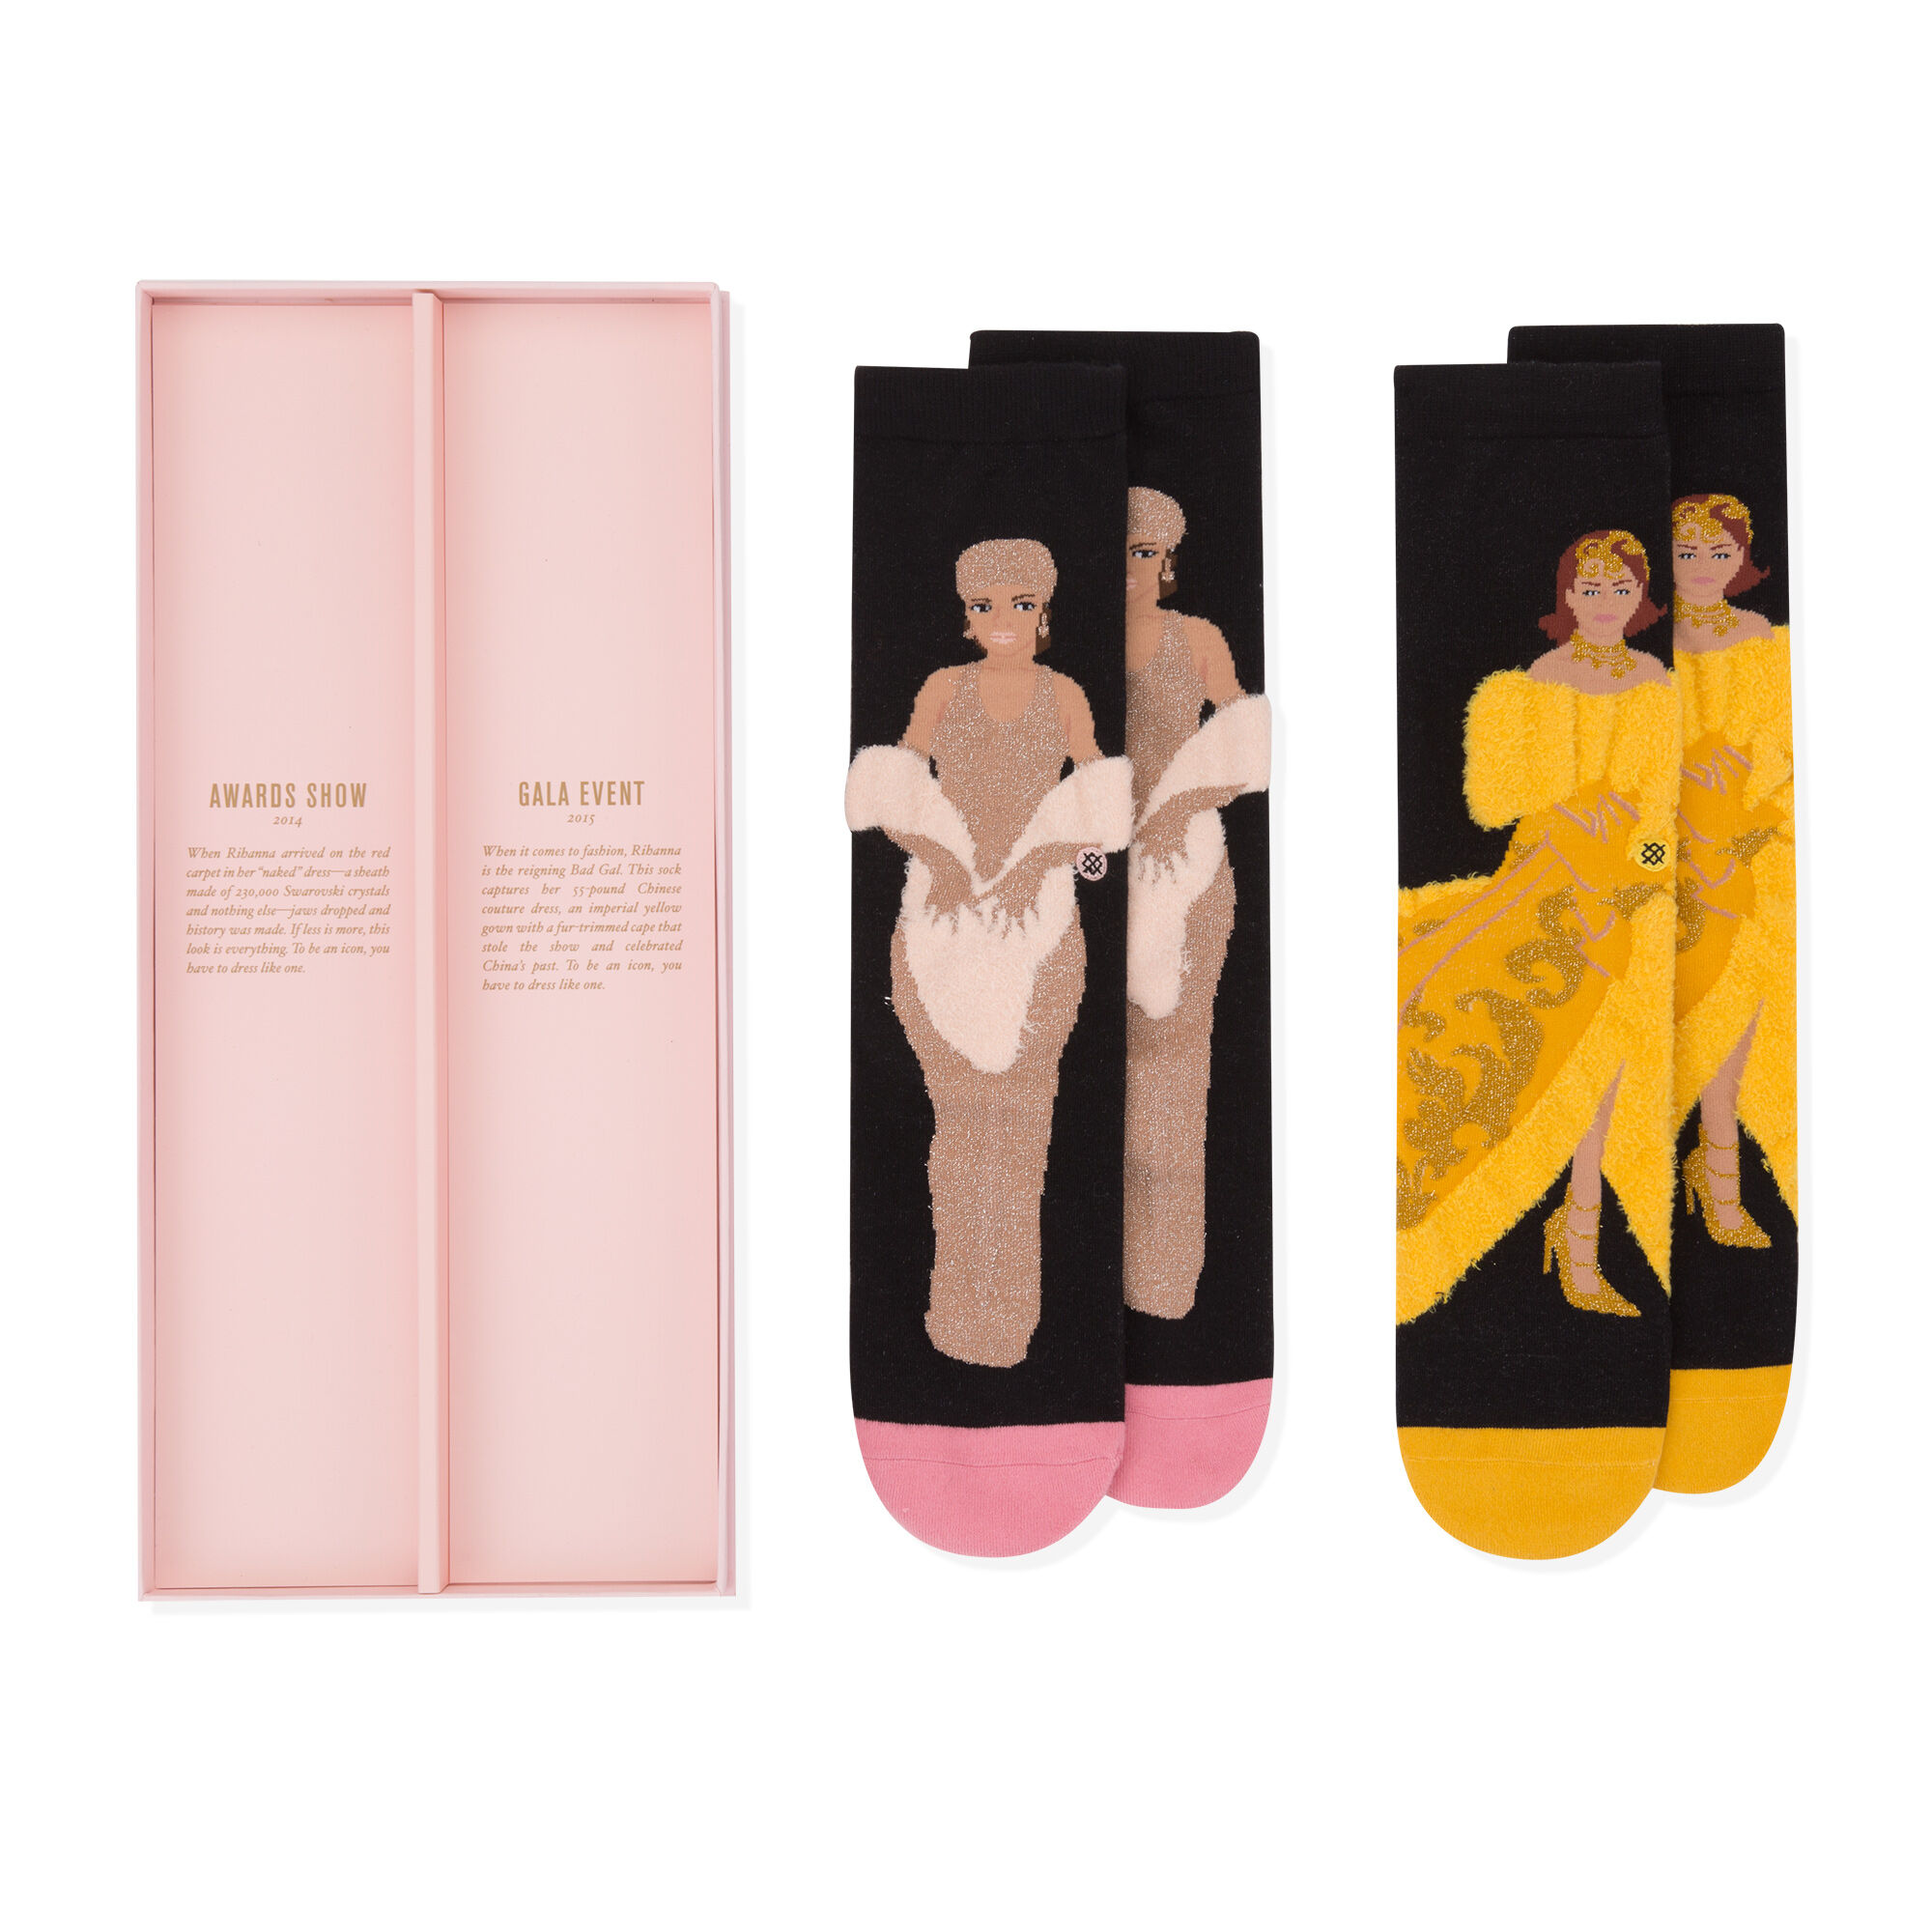 Thank you, Rihanna for these socks patterned in your likeness